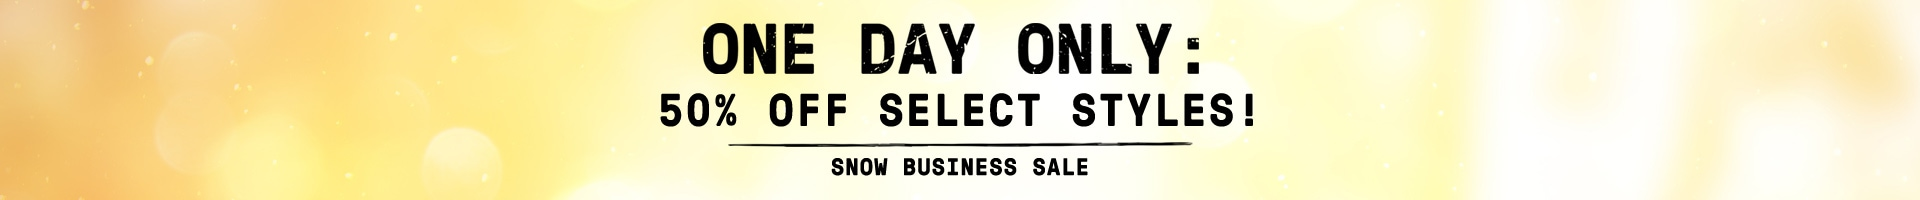 One day only. 50% off select styles! Snow business sale.